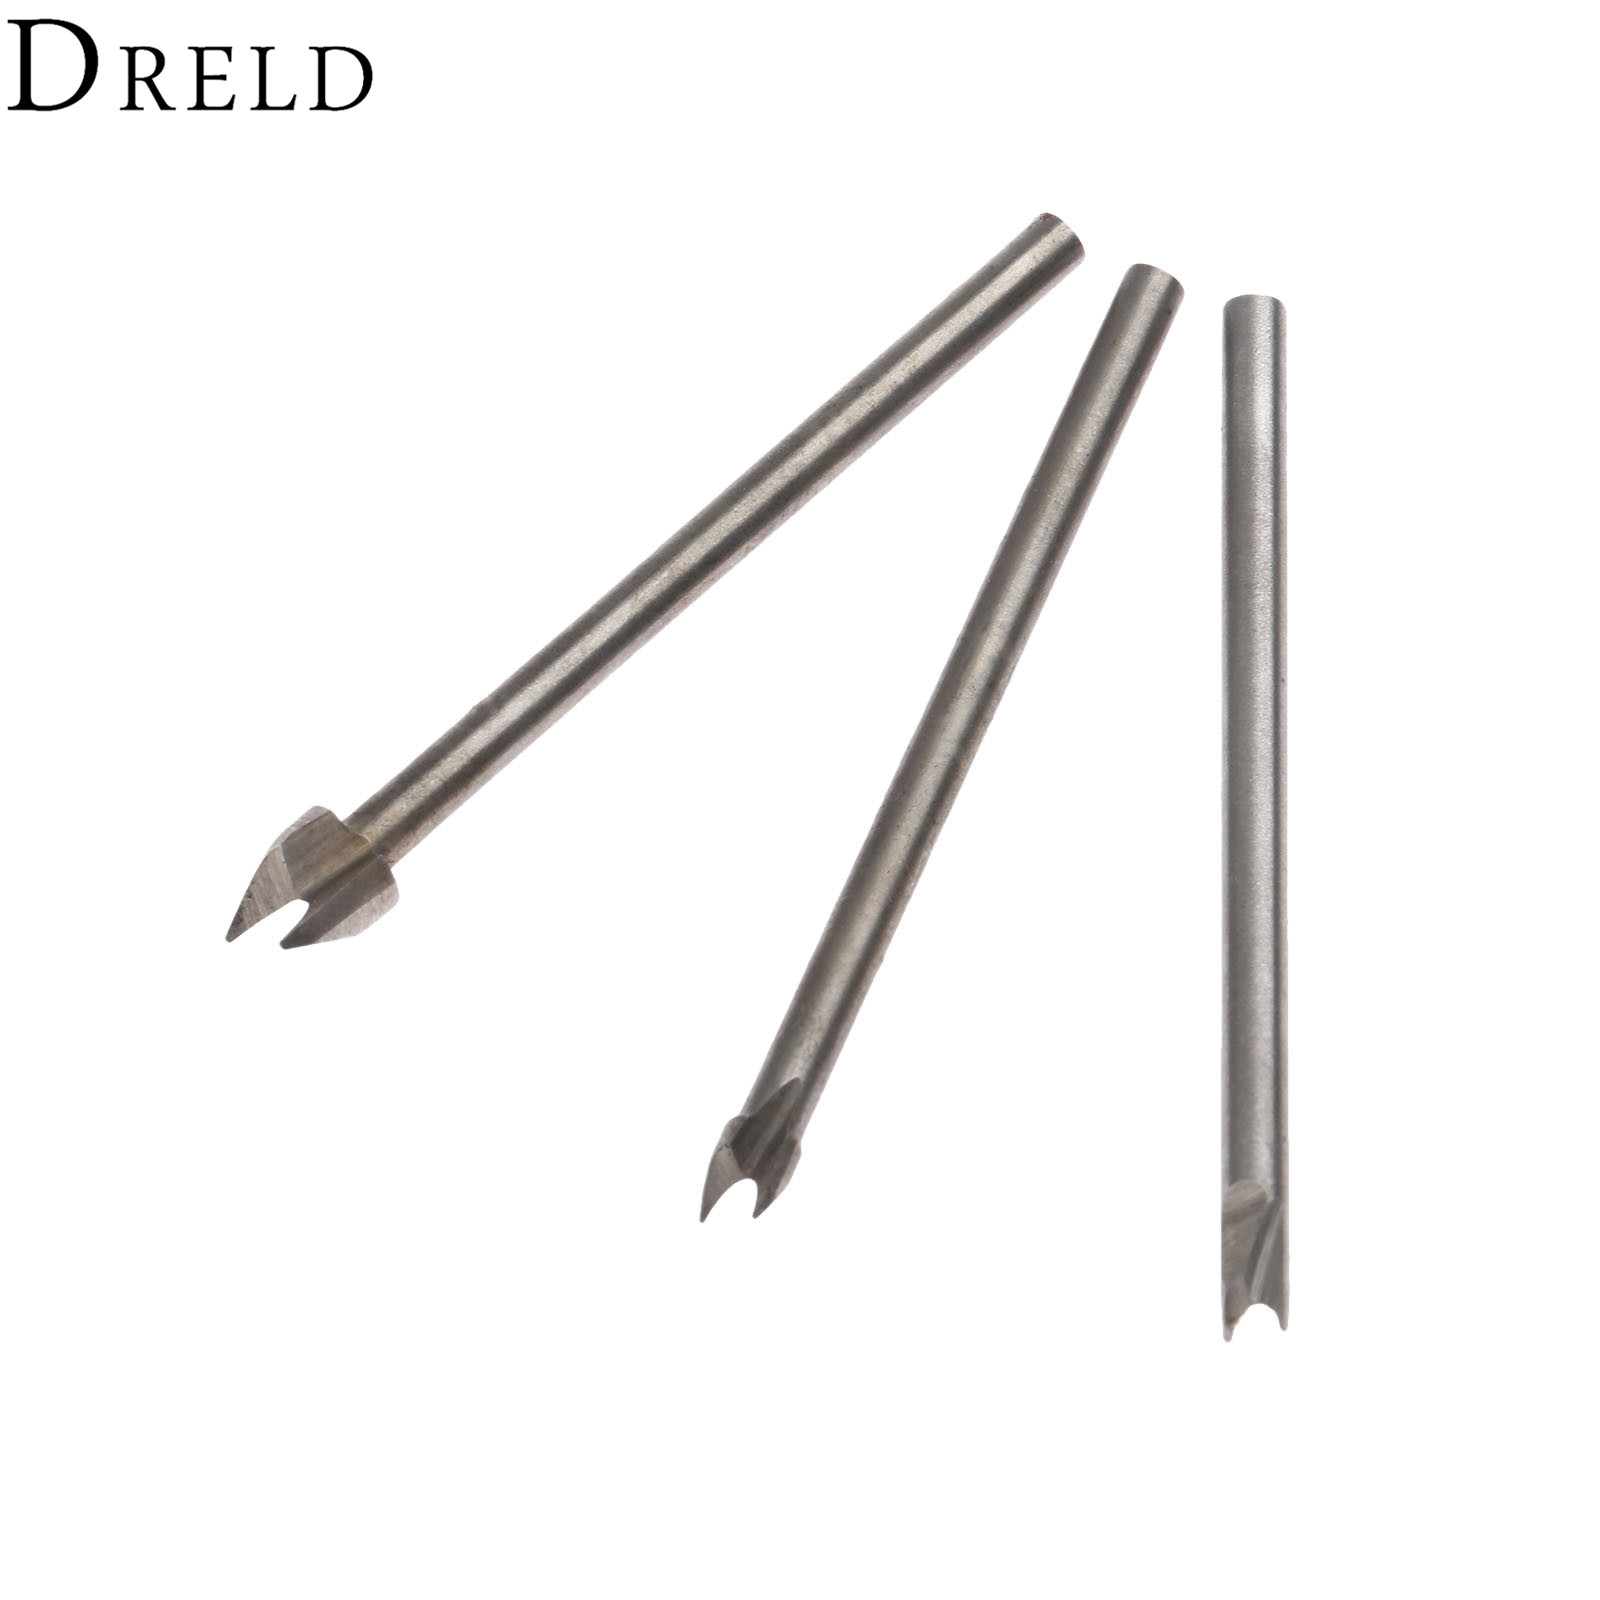 DRELD 3Pc 3mm Shank Beads Cutter Engraving Machine Woodworking Cutting Carving Chisel Tool Milling Cutter For Dremel Rotary Tool